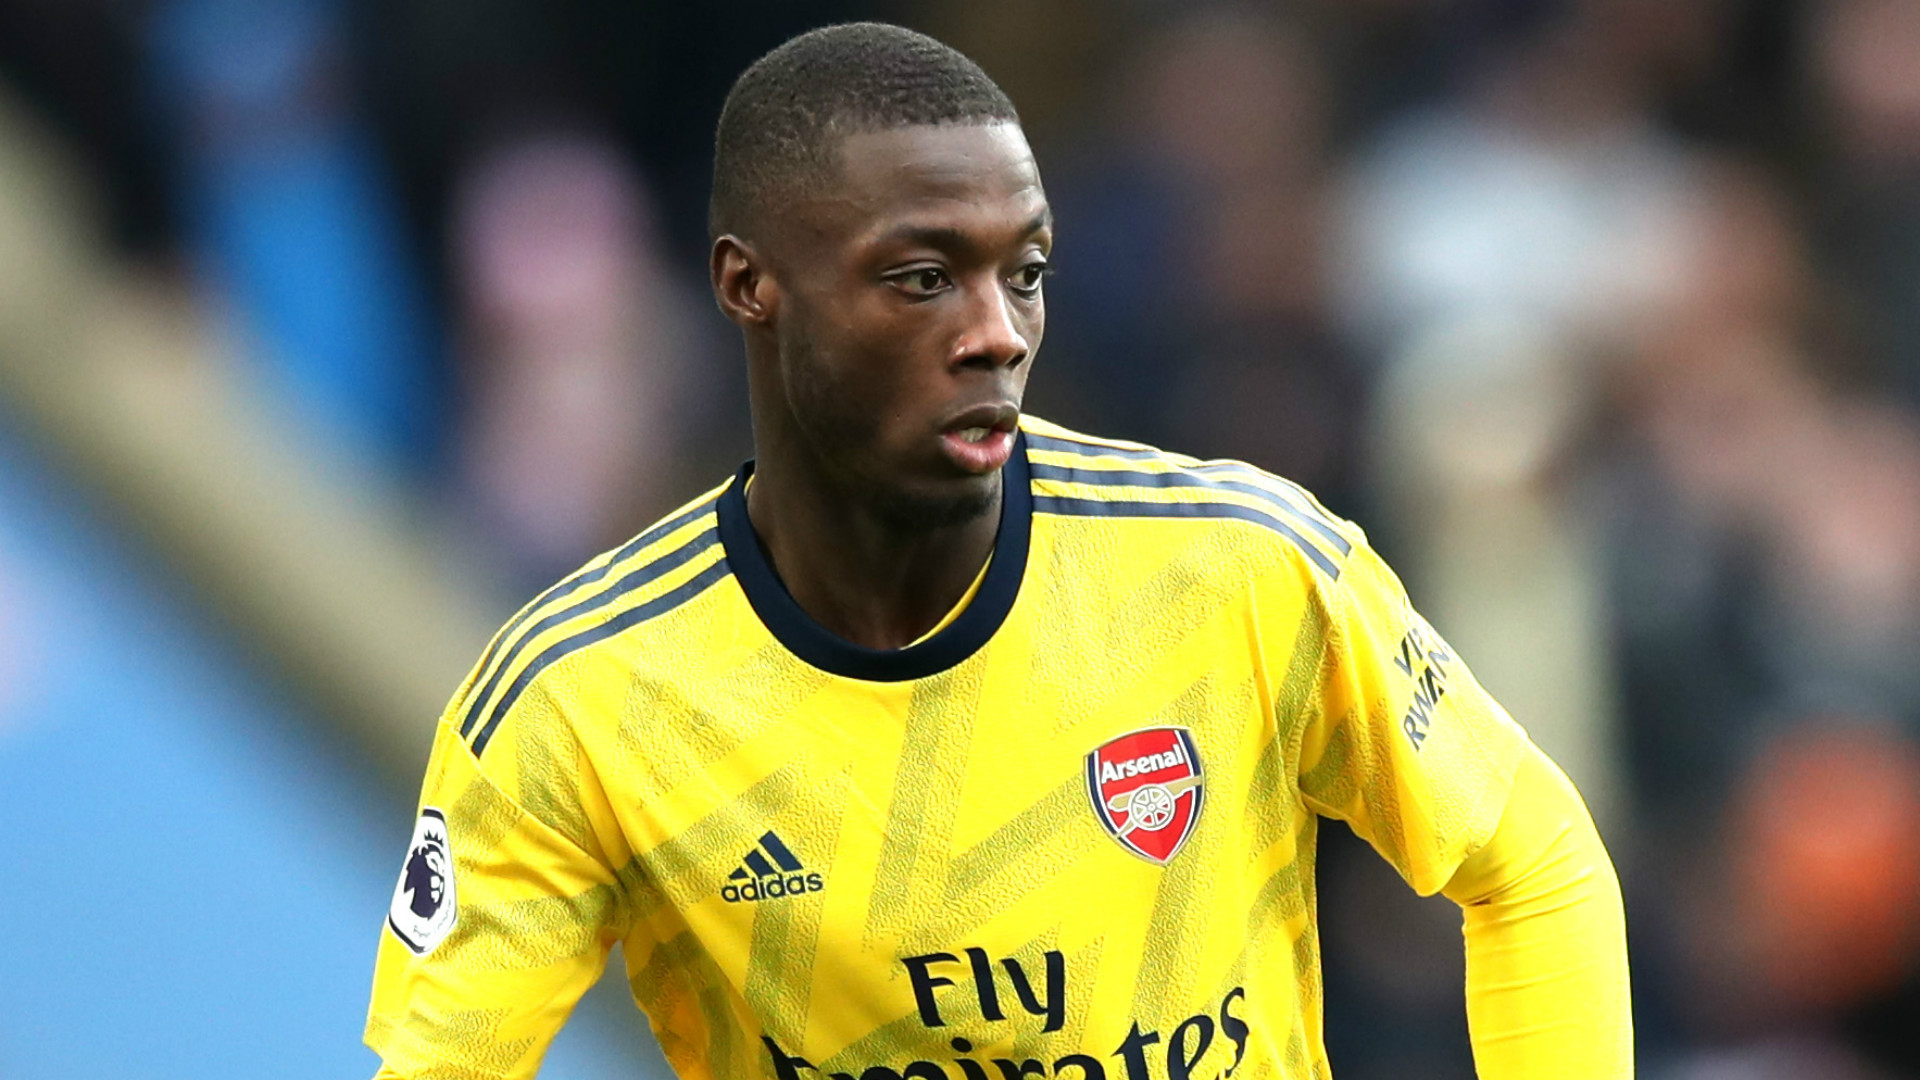 Arsenal's Nicolas Pepe 'needed time to adapt' - Unai Emery ...